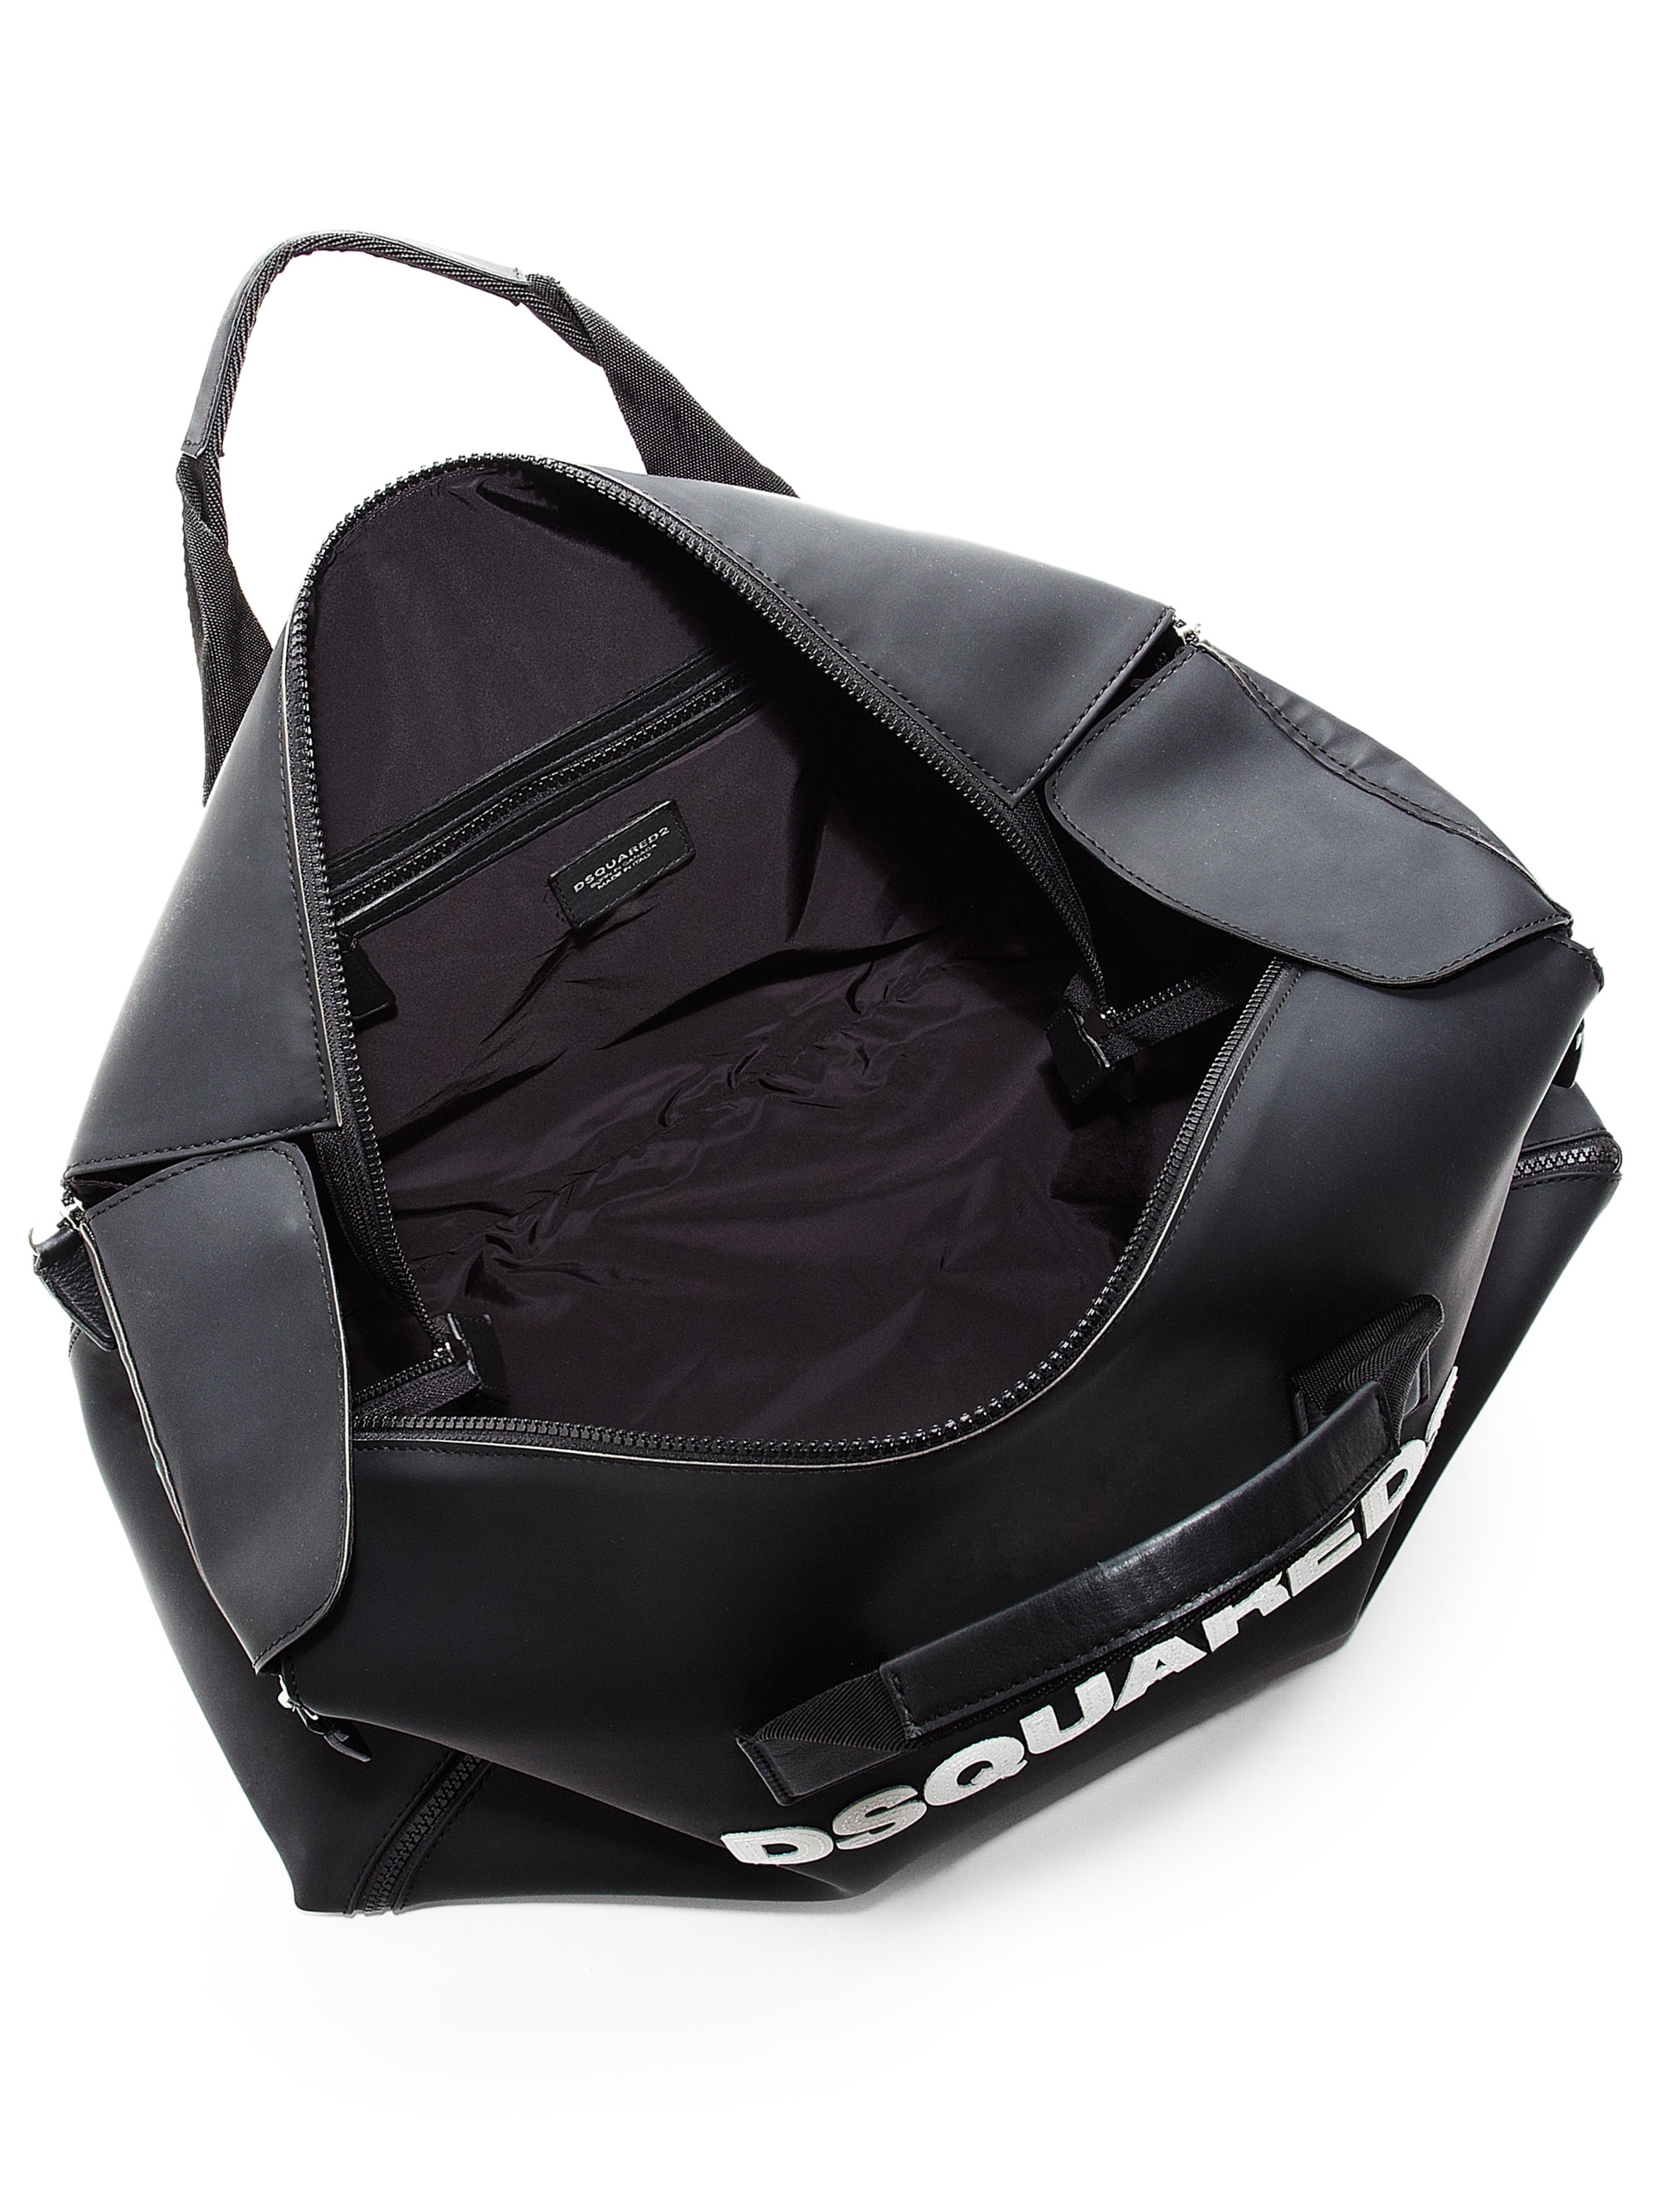 108cfd4d0645 Lyst - DSquared² Rubber Duffel Bag in Black for Men